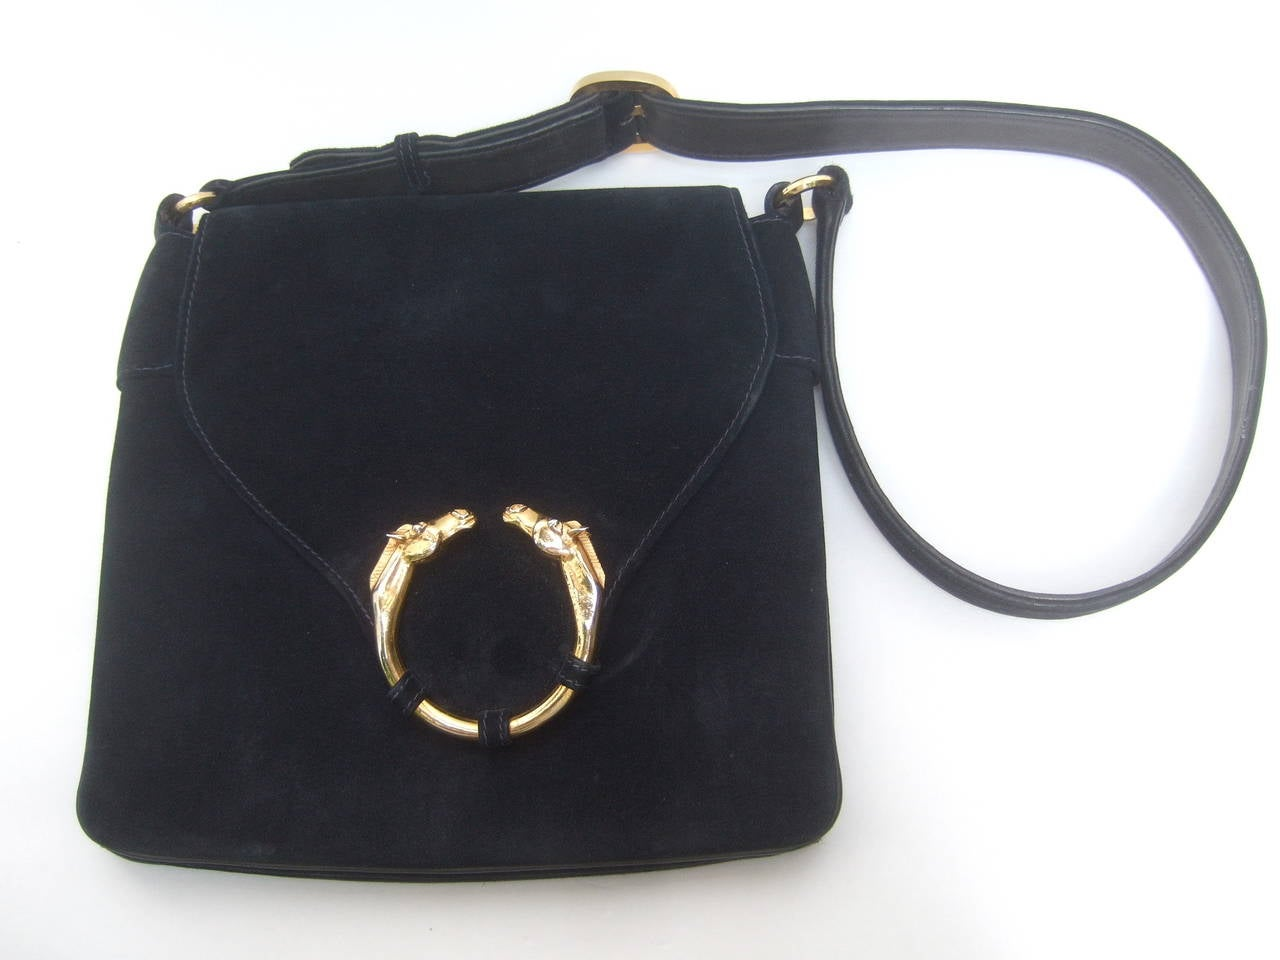 Gucci Equine Emblem Midnight Blue Suede Shoulder Bag c 1970 In Excellent Condition For Sale In Santa Barbara, CA